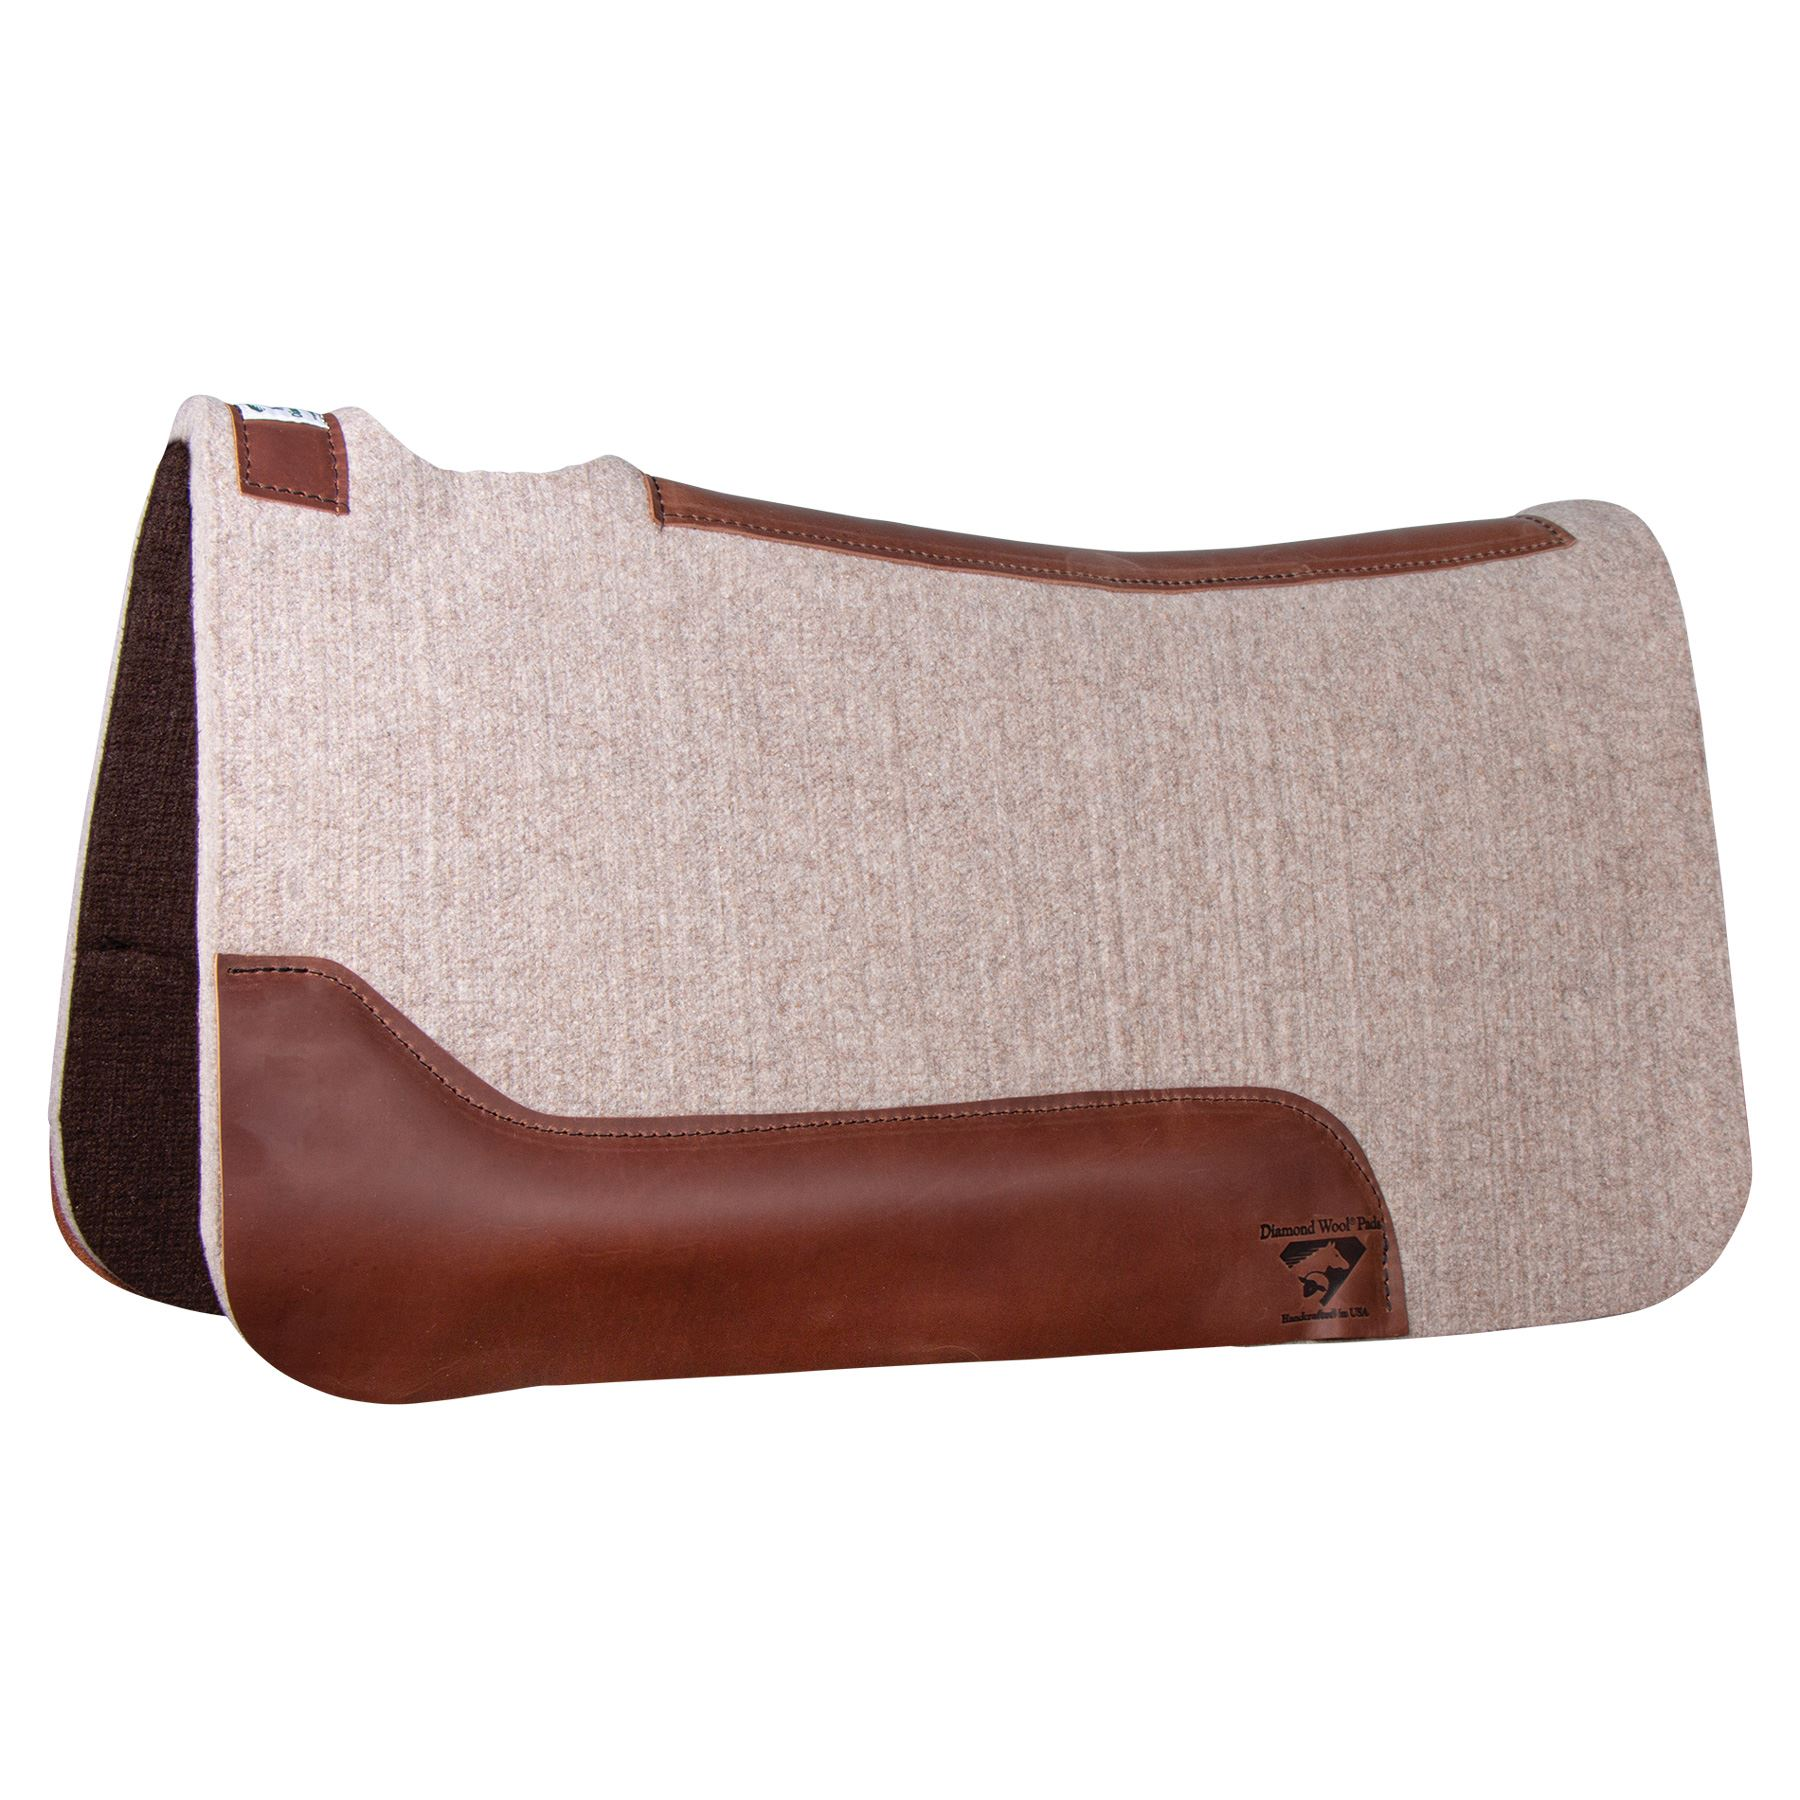 Diamond Wool Contour Cowboy Felt Western Saddle Pad